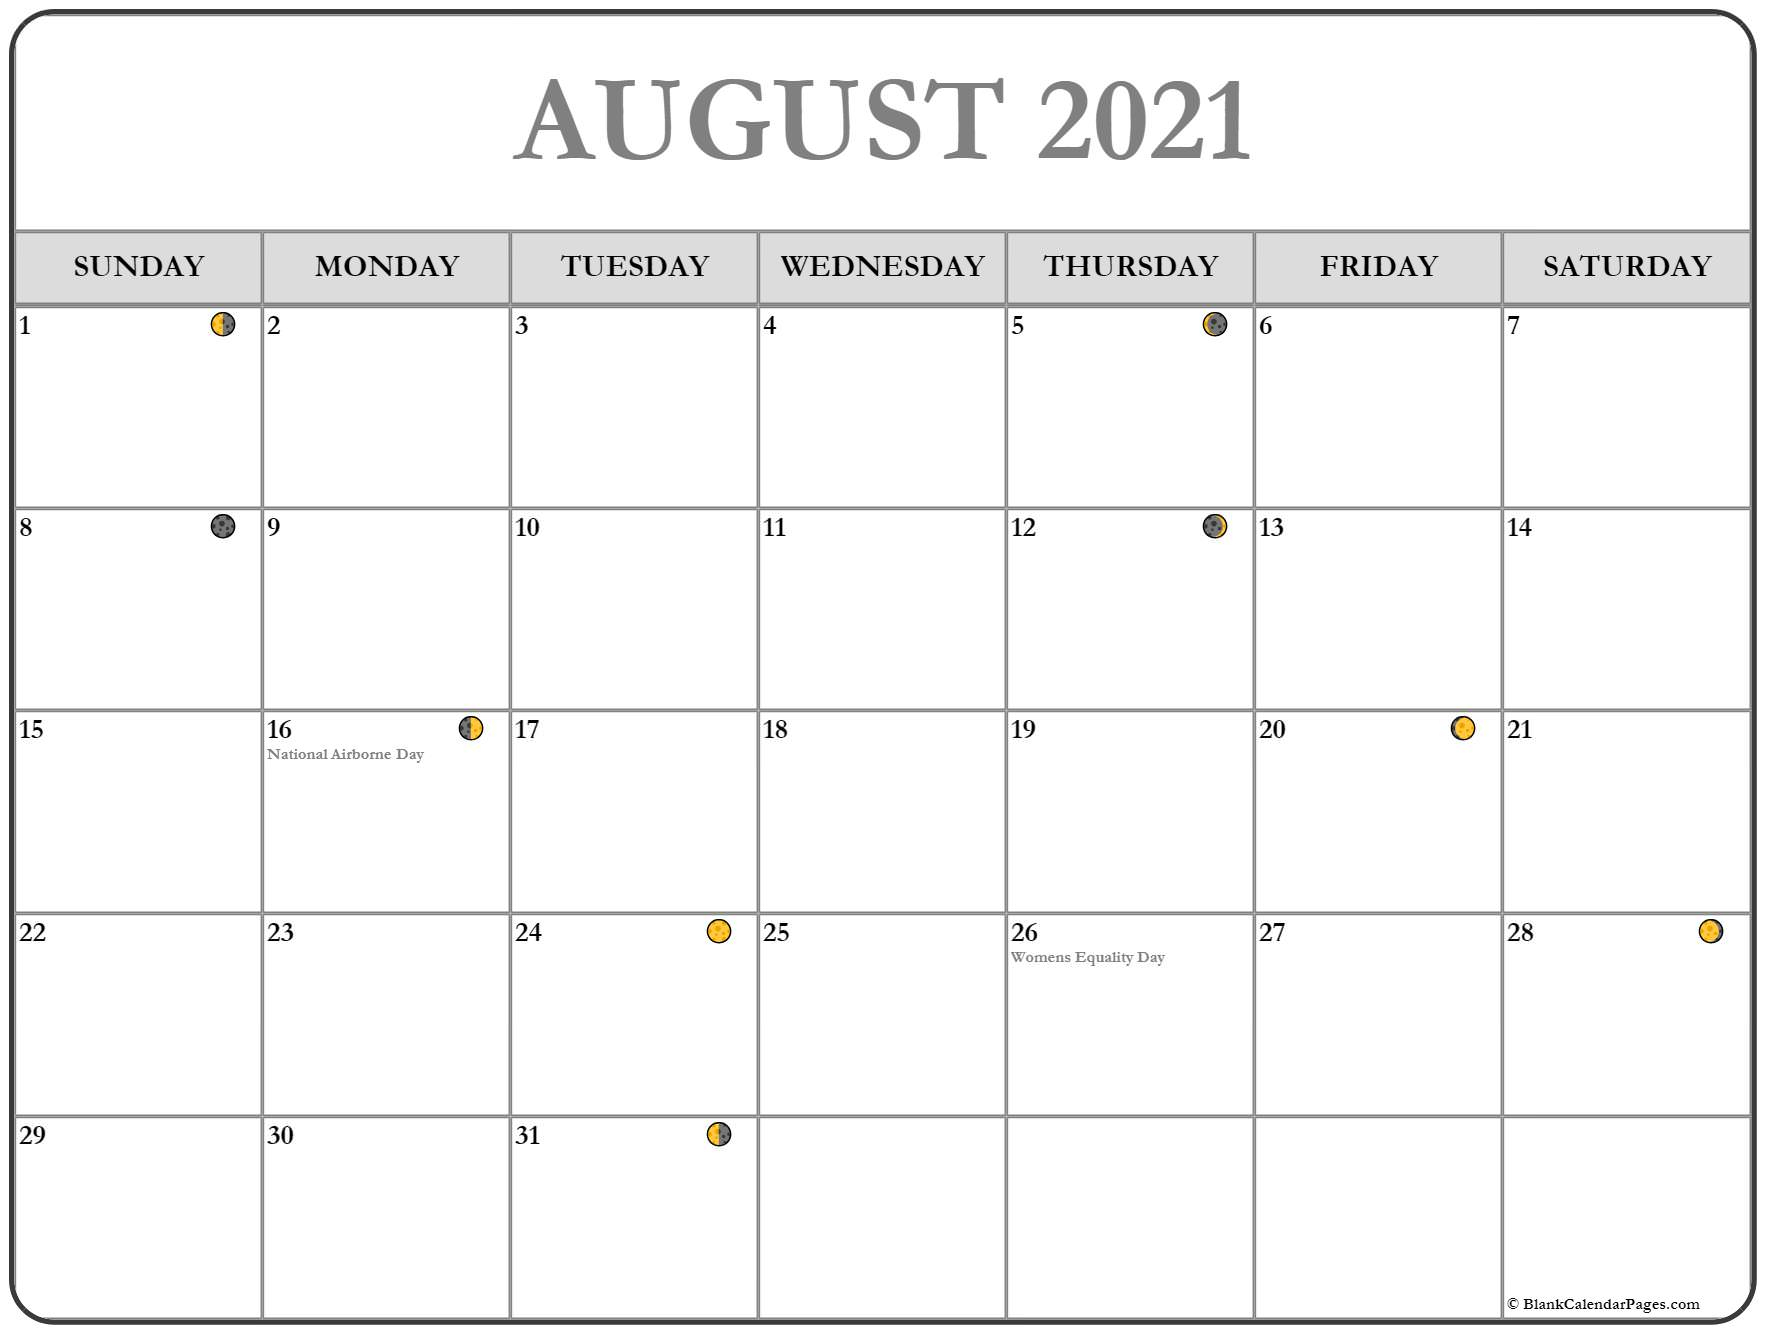 August 2021 Lunar Calendar | Moon Phase Calendar With Regard To Moon Calendar 2021 Name And Date For Kids